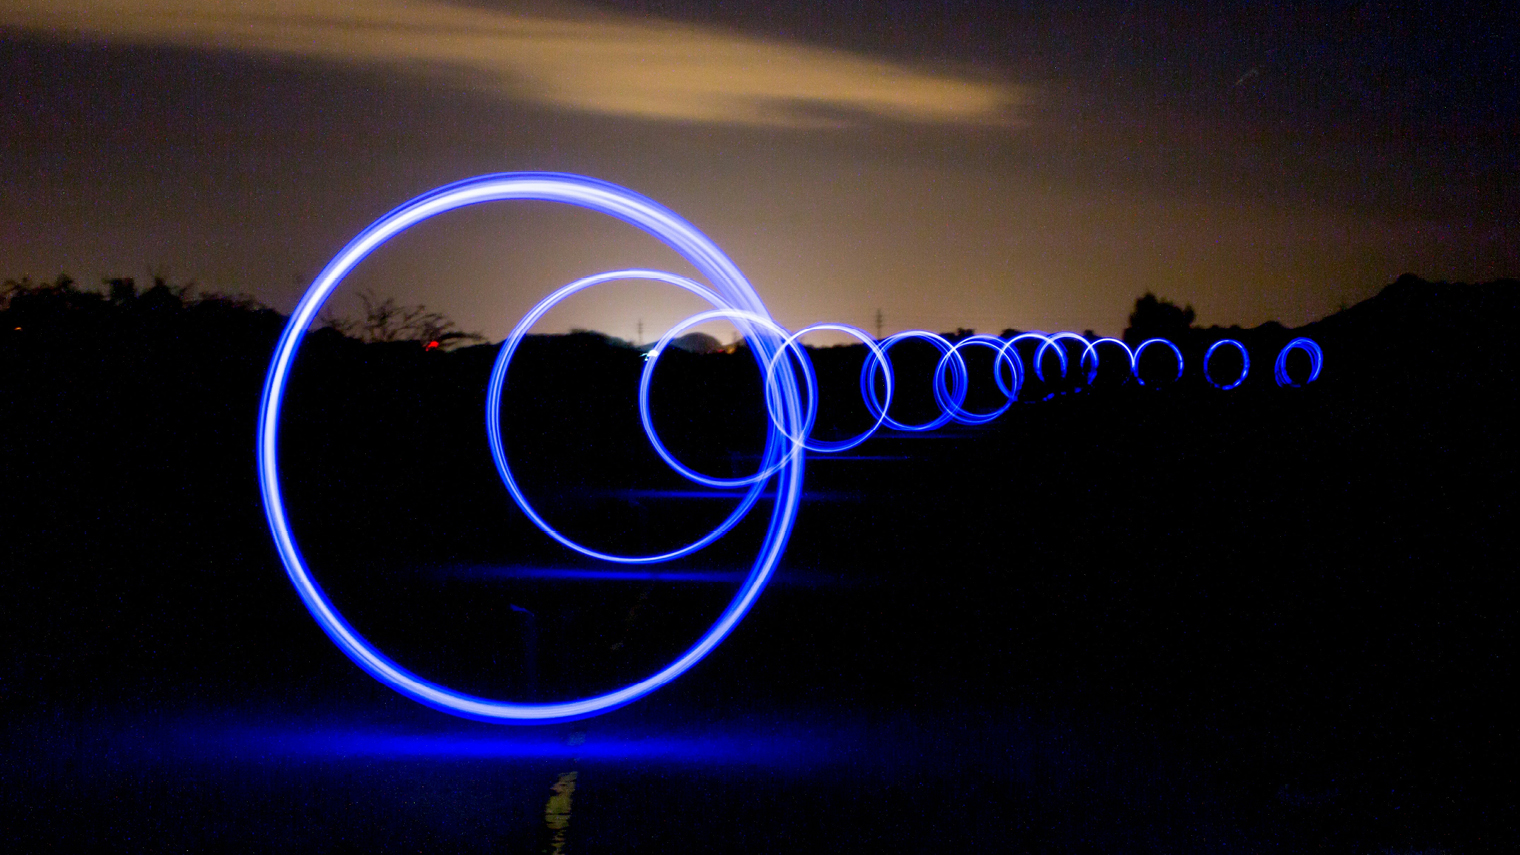 unstructured data Loops of light against night sky